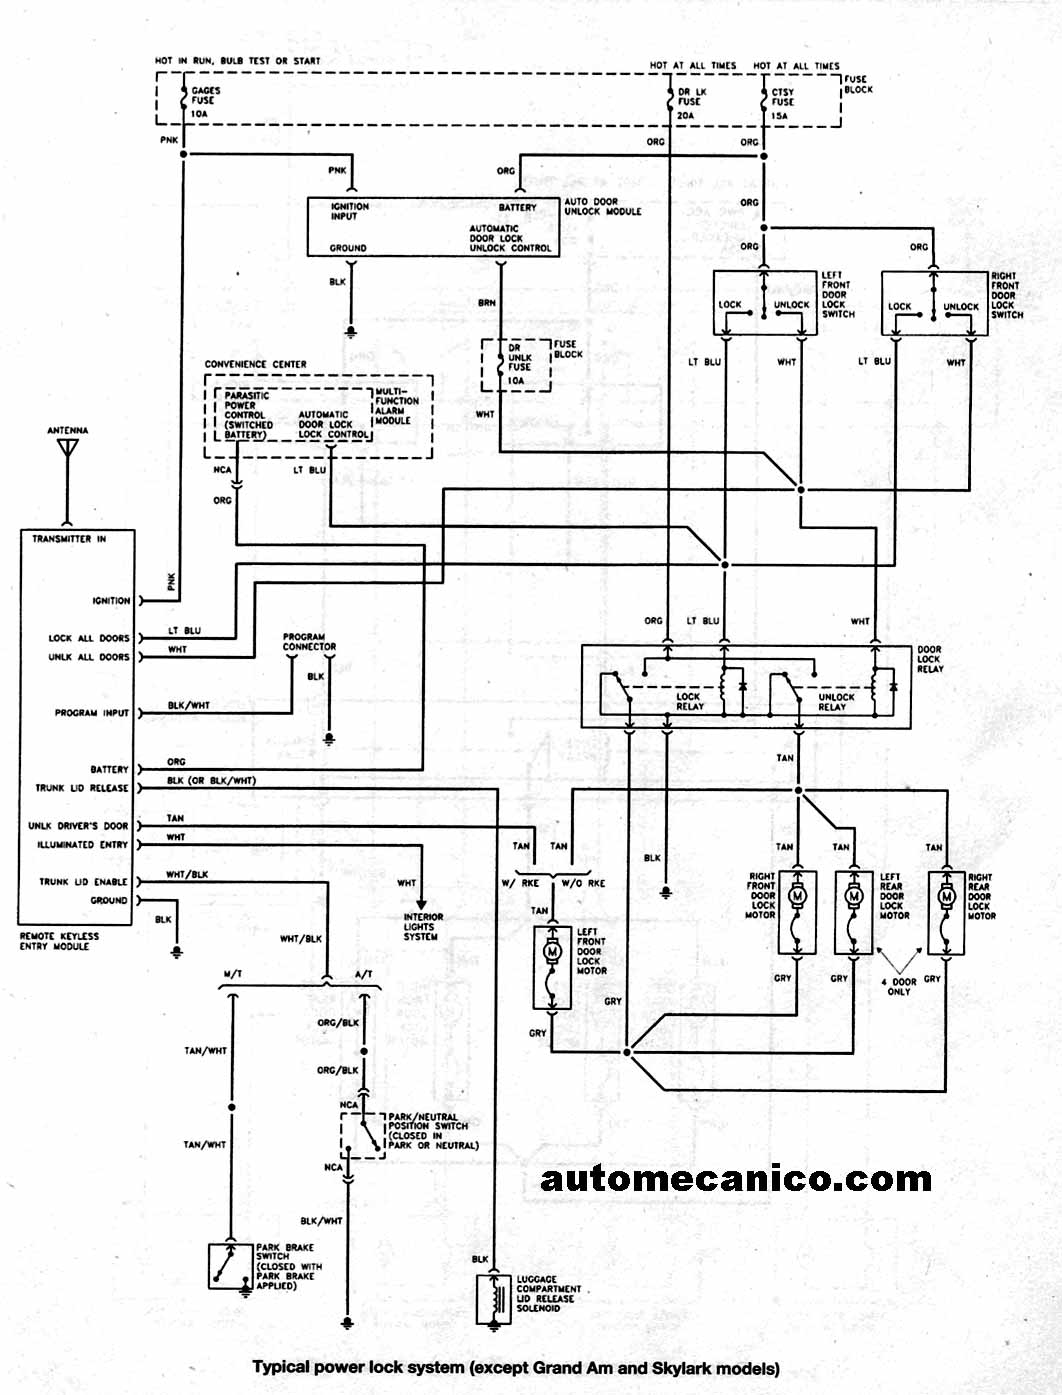 Diagramasgm on 2003 Buick Rendezvous Radio Wiring Diagram